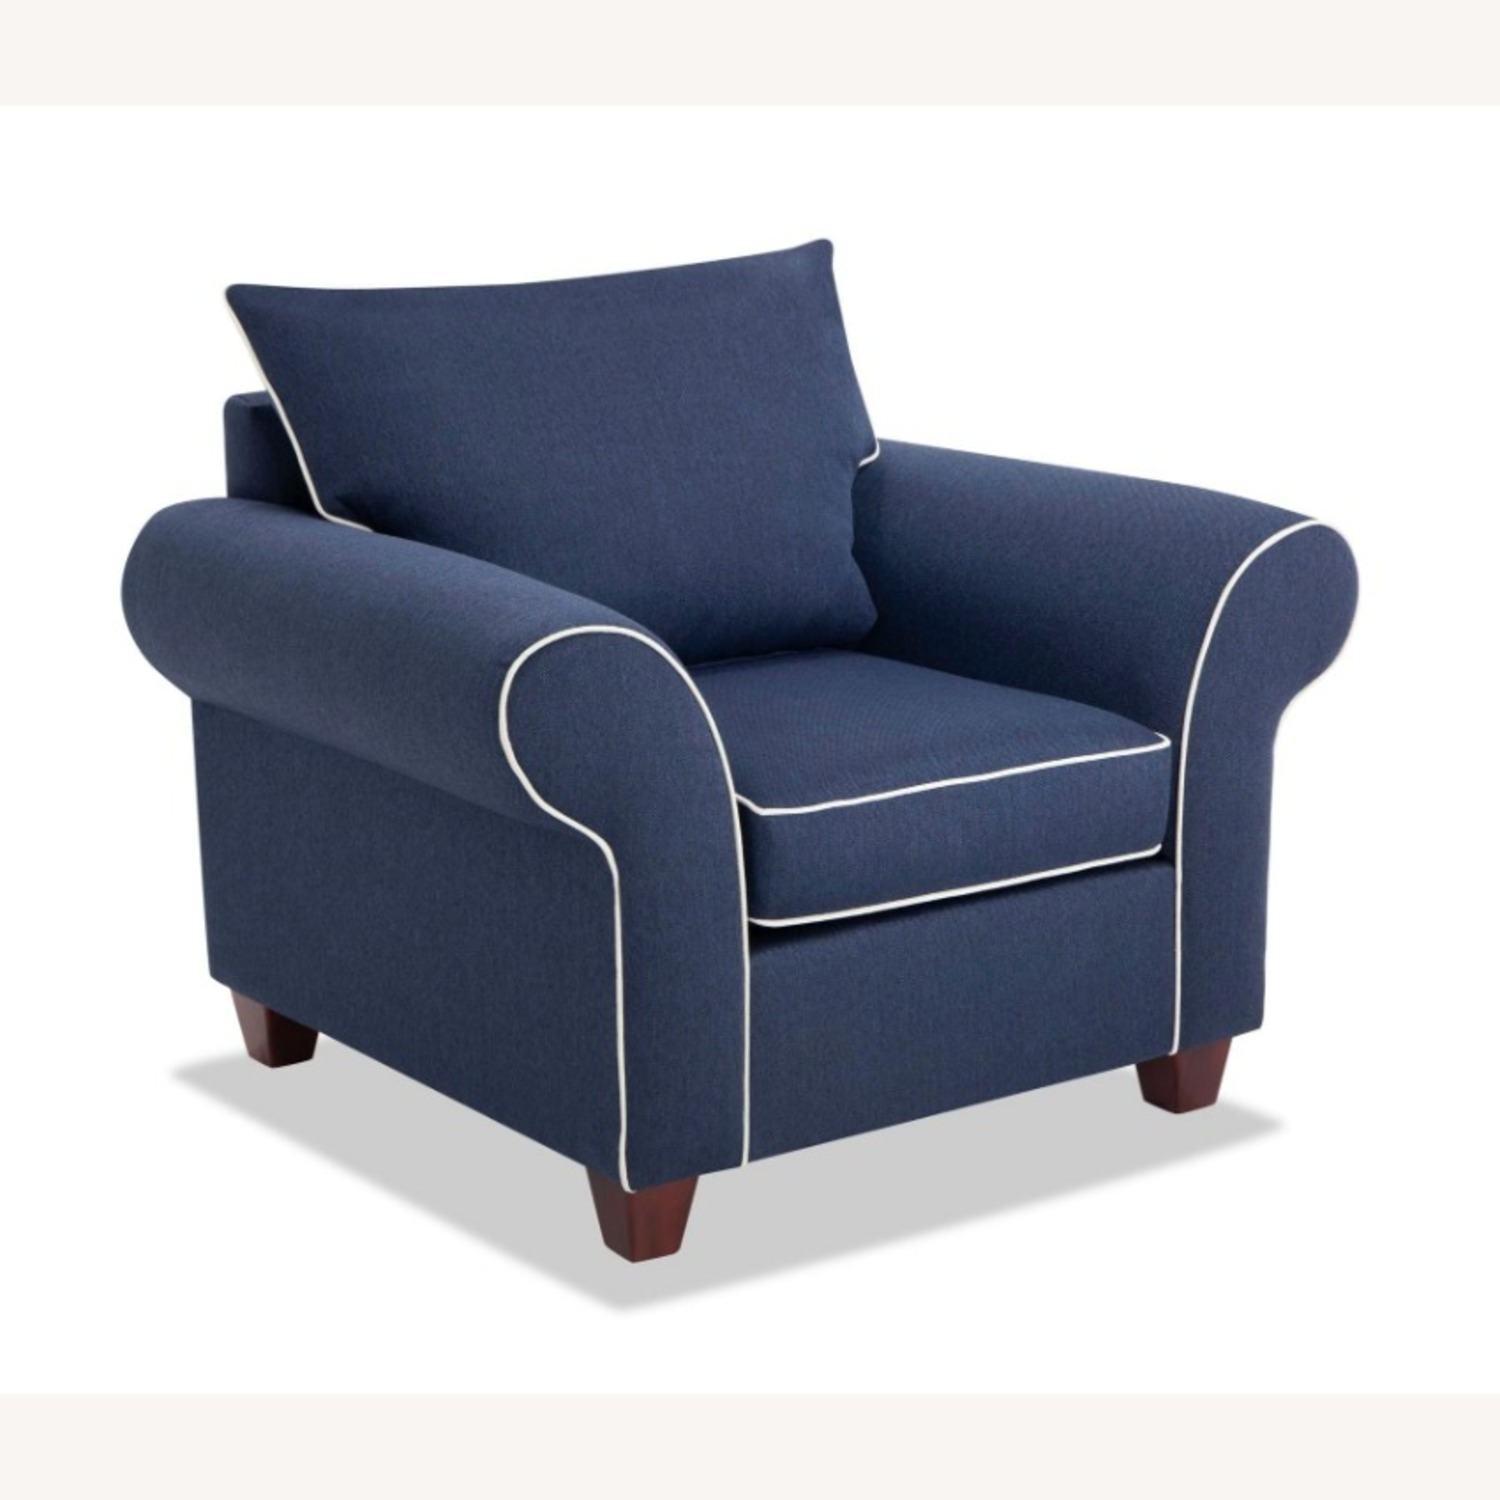 Bob's Discount Furniture Armchair with Ottoman - image-2